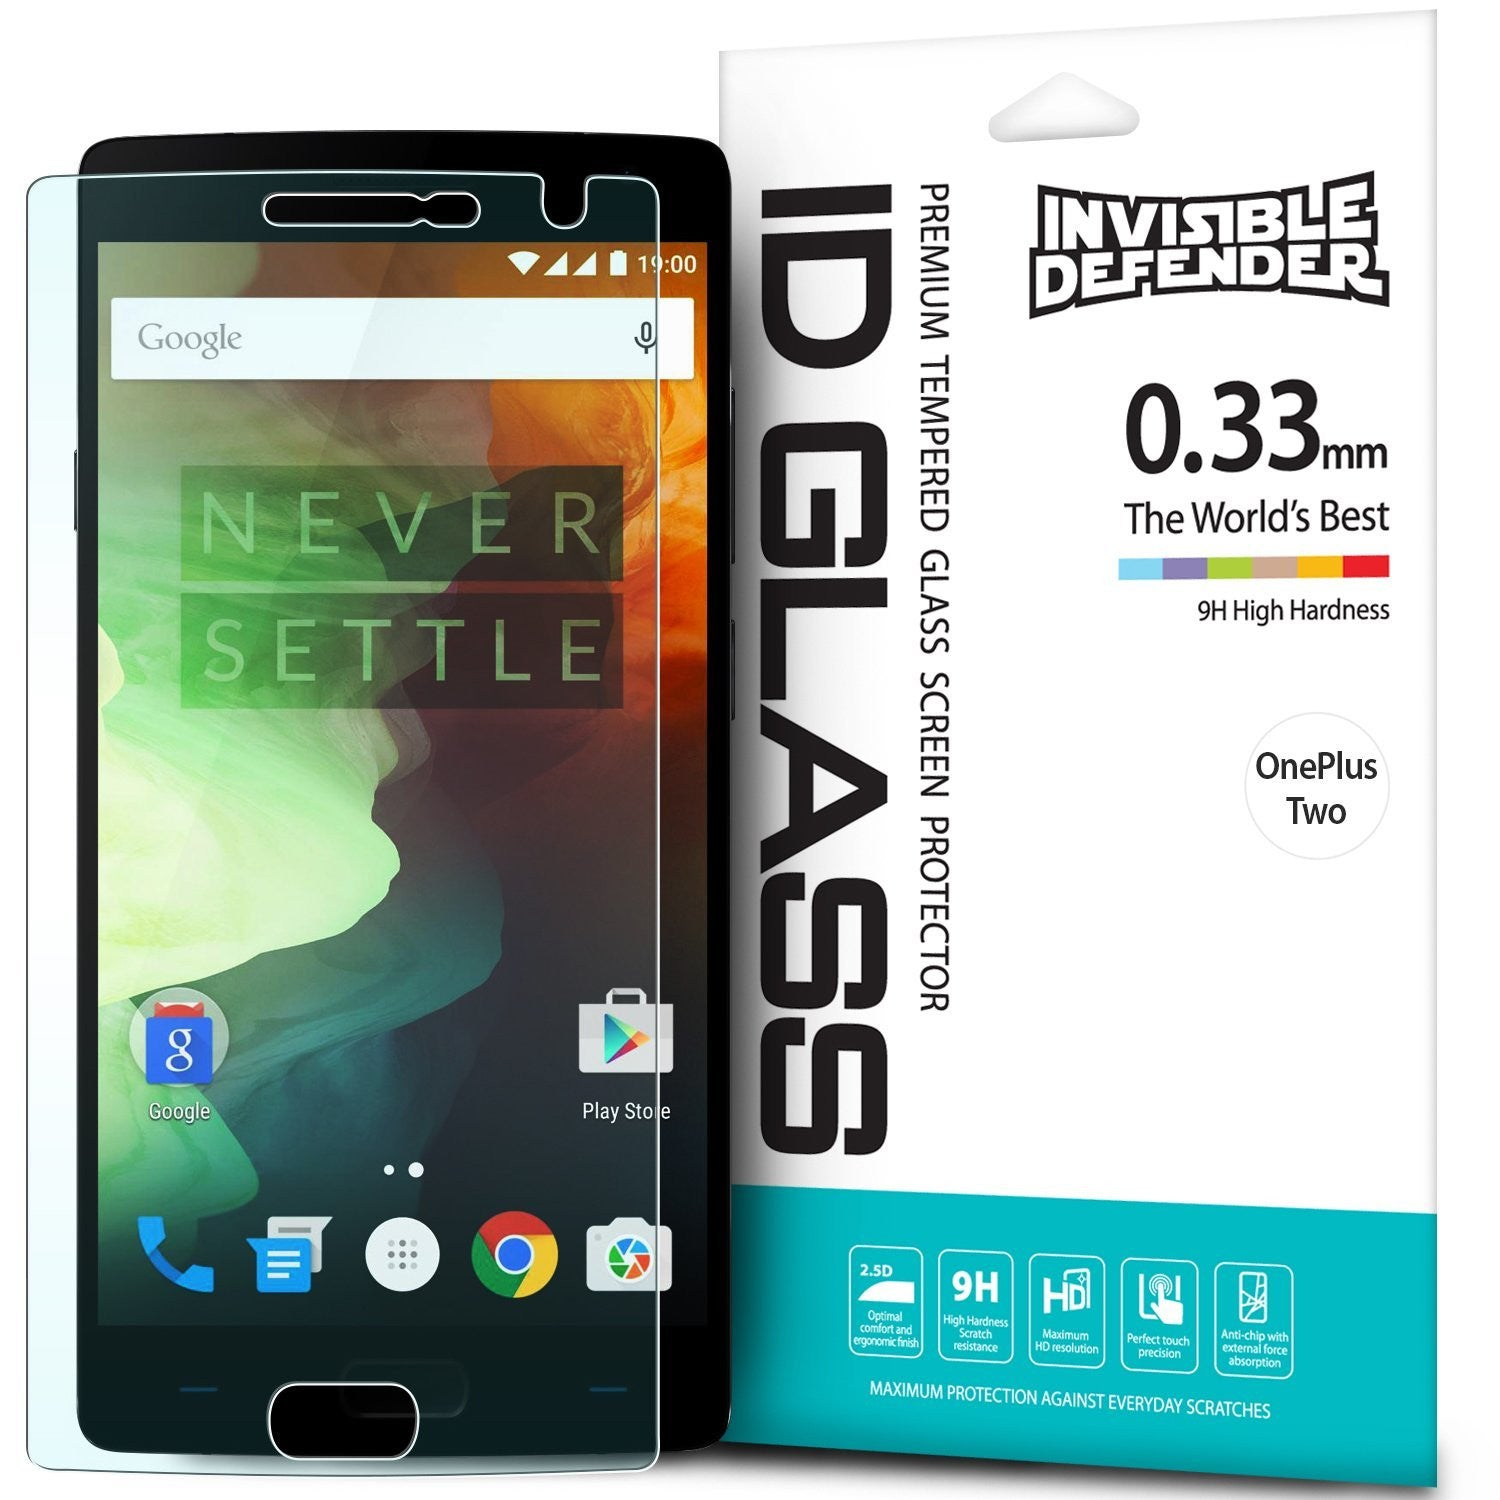 oneplus 2, ringke invisible defender 0.33mm tempered glass screen protector